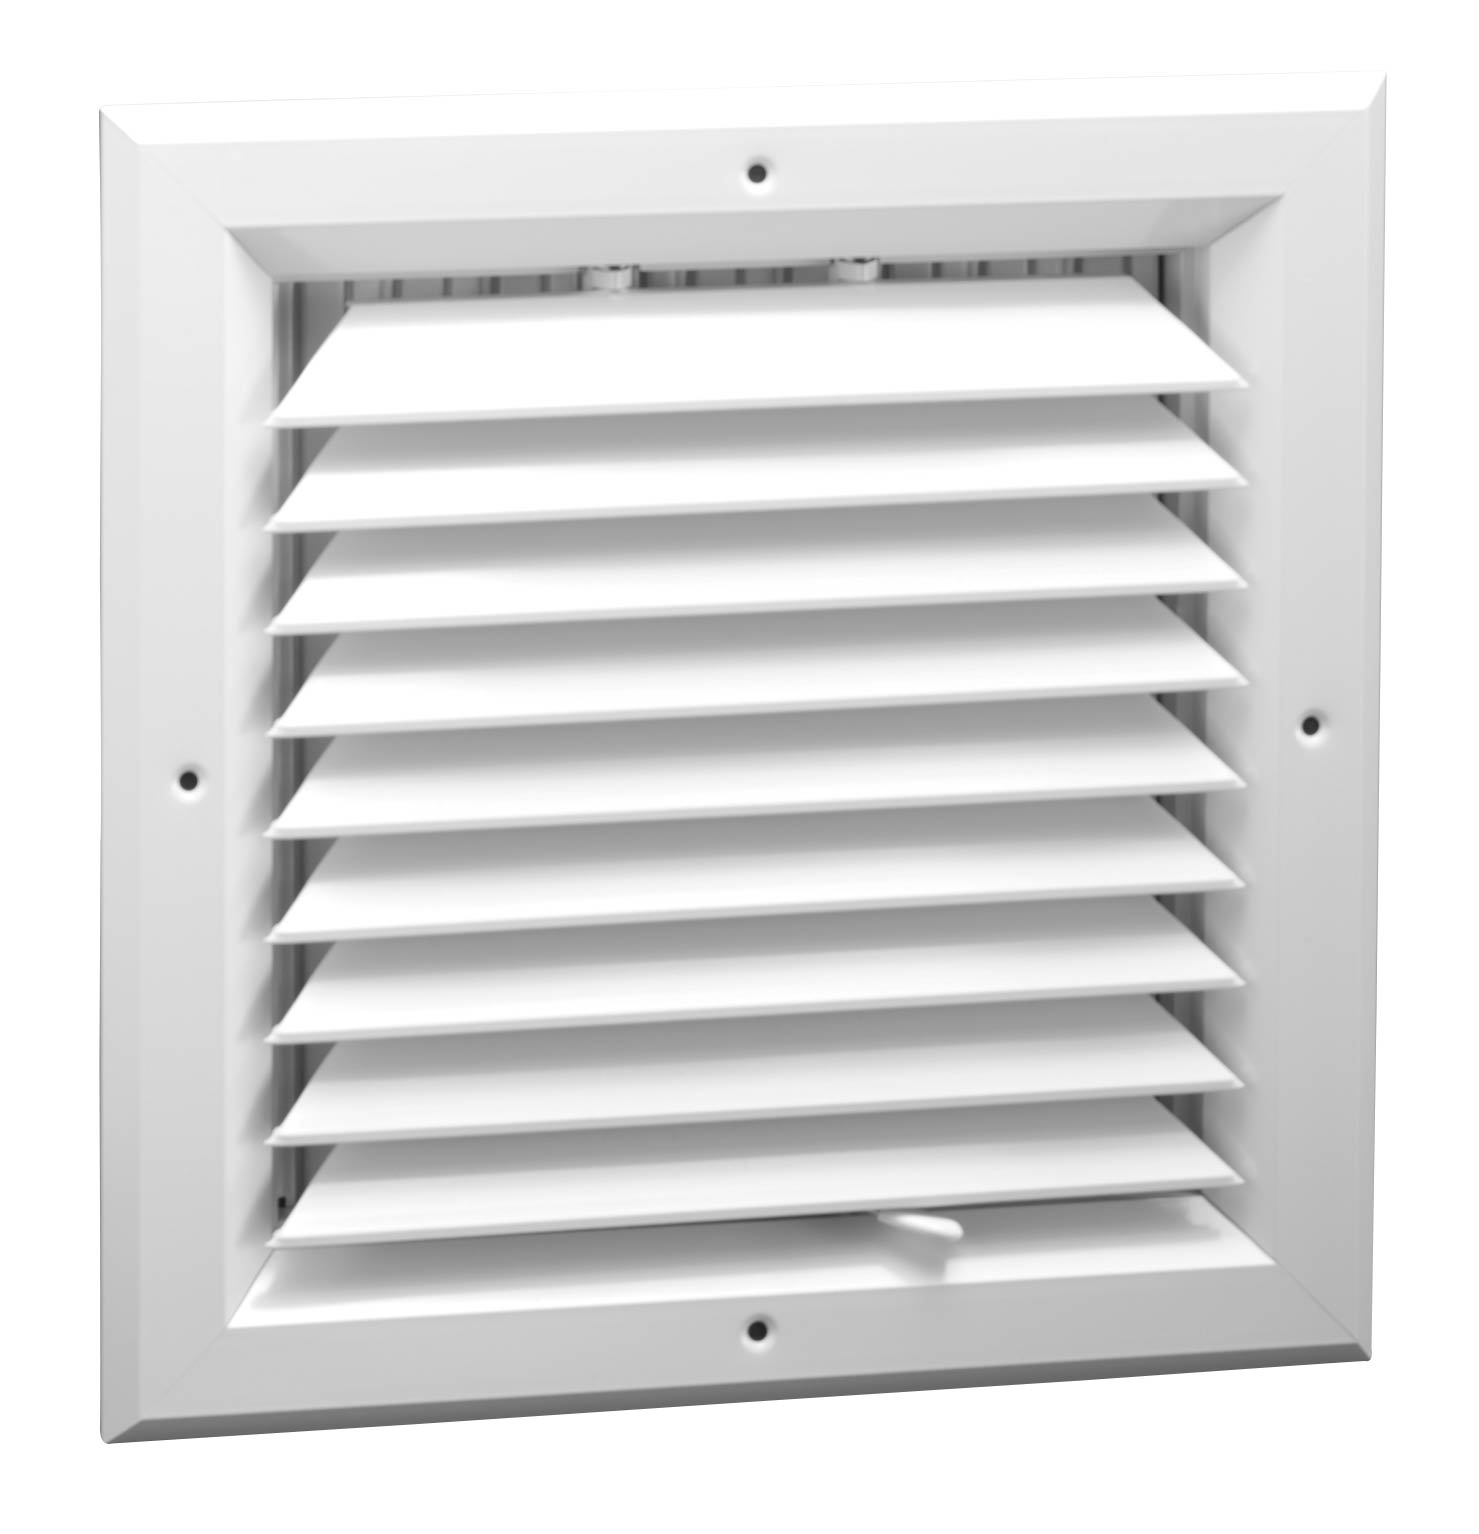 p in x glacier diffuser ceiling registers square bay way whites grilles